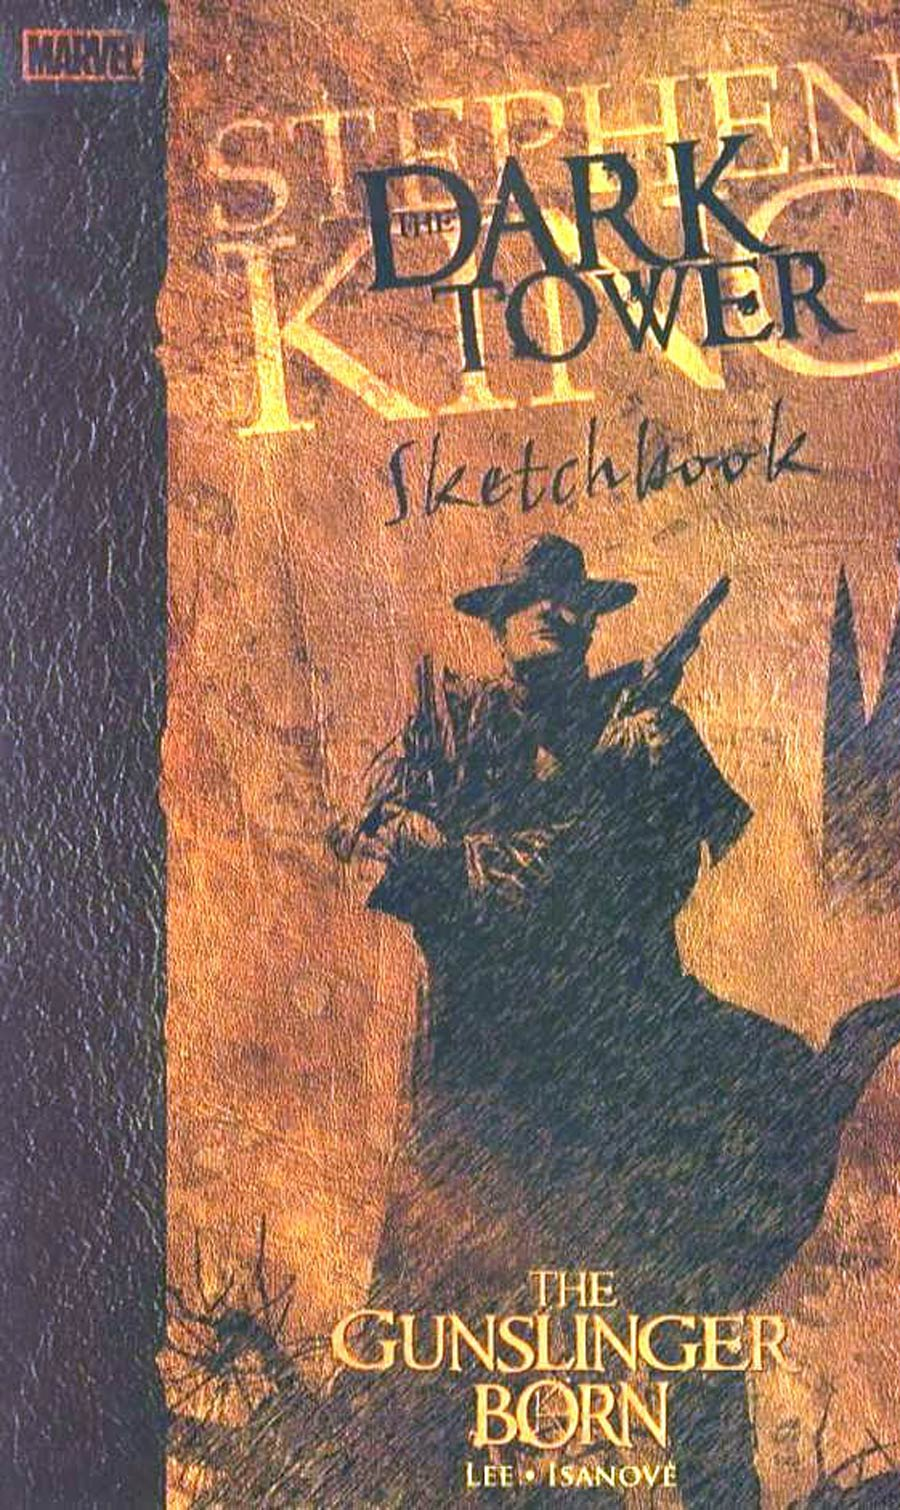 Dark Tower Gunslinger Born Sketchbook